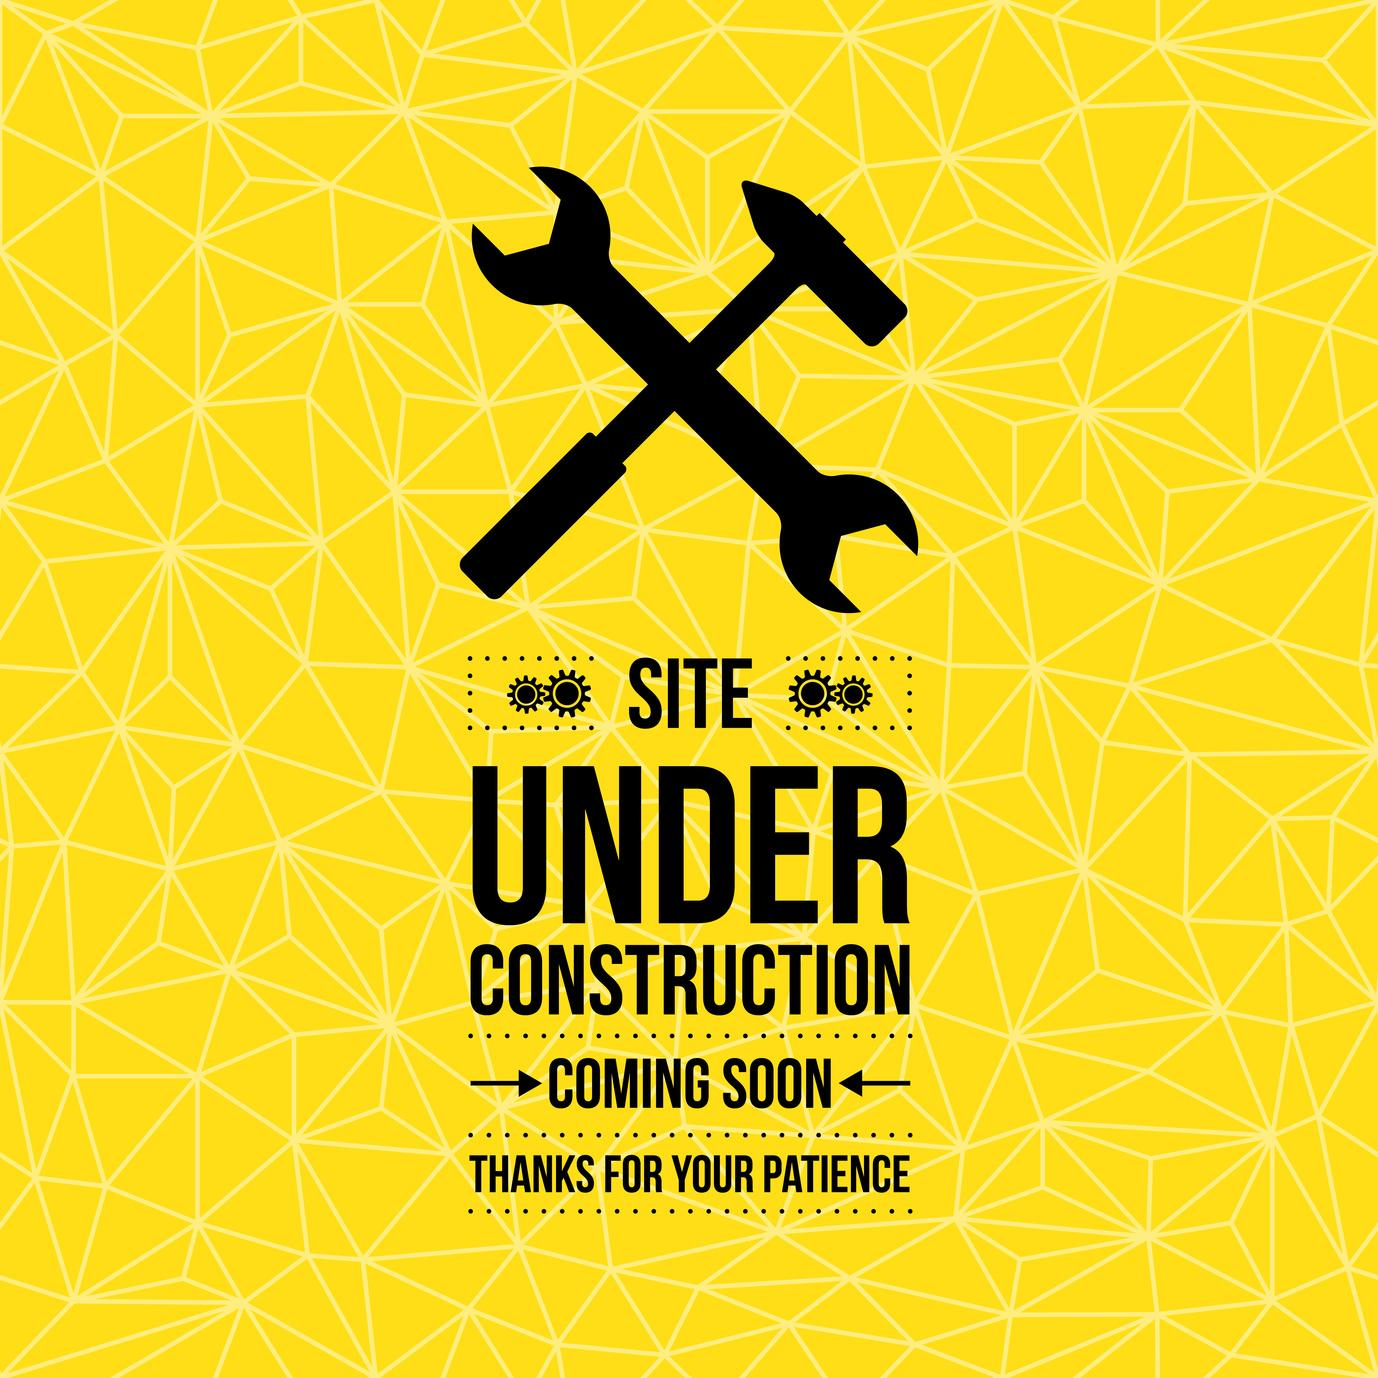 Under construction sign, vector illustration, yellow seamless pattern